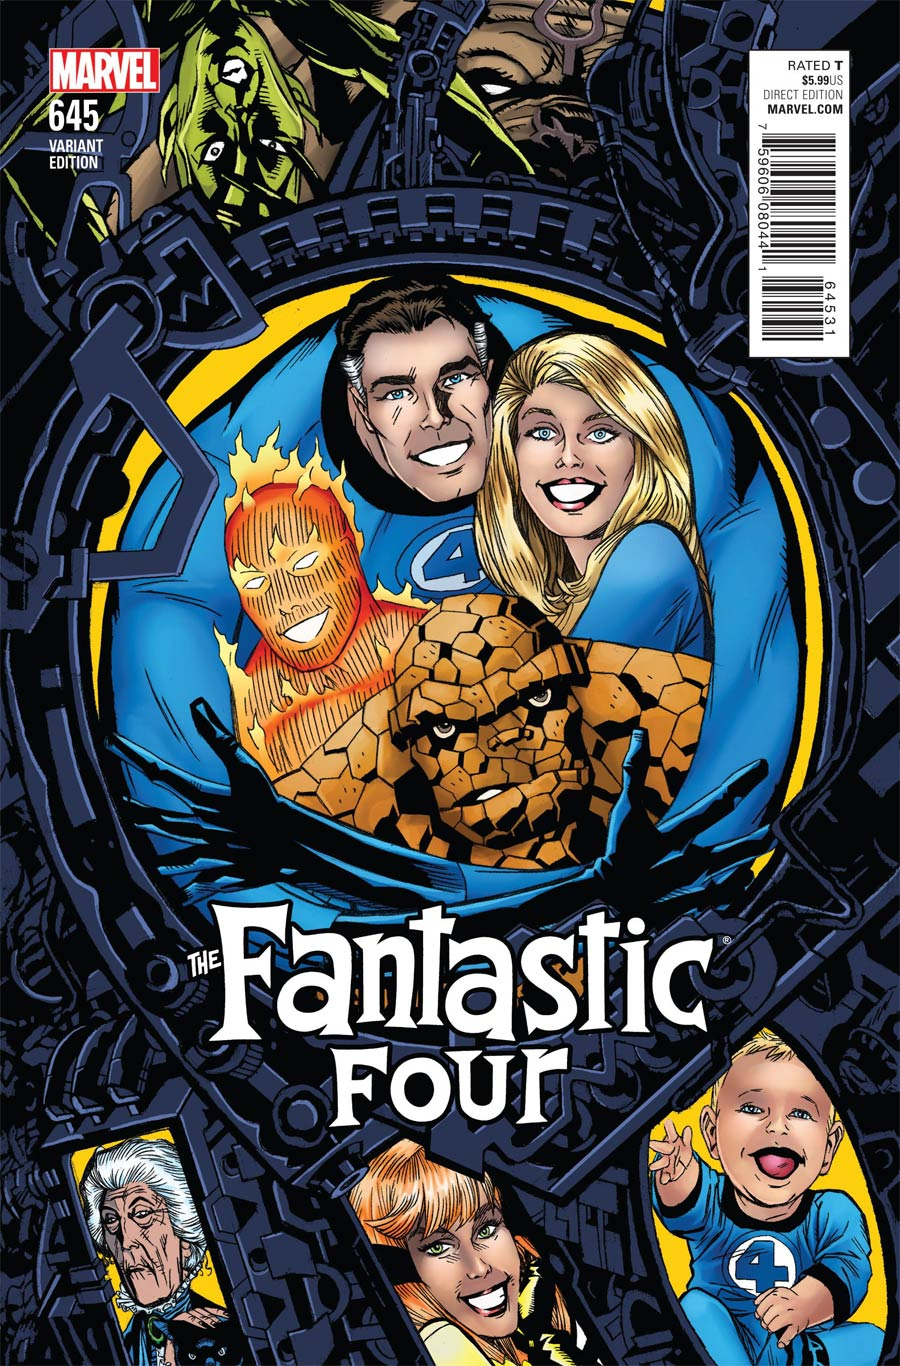 Fantastic Four Vol 5 #645 Cover B Variant Michael Golden Connecting Cover